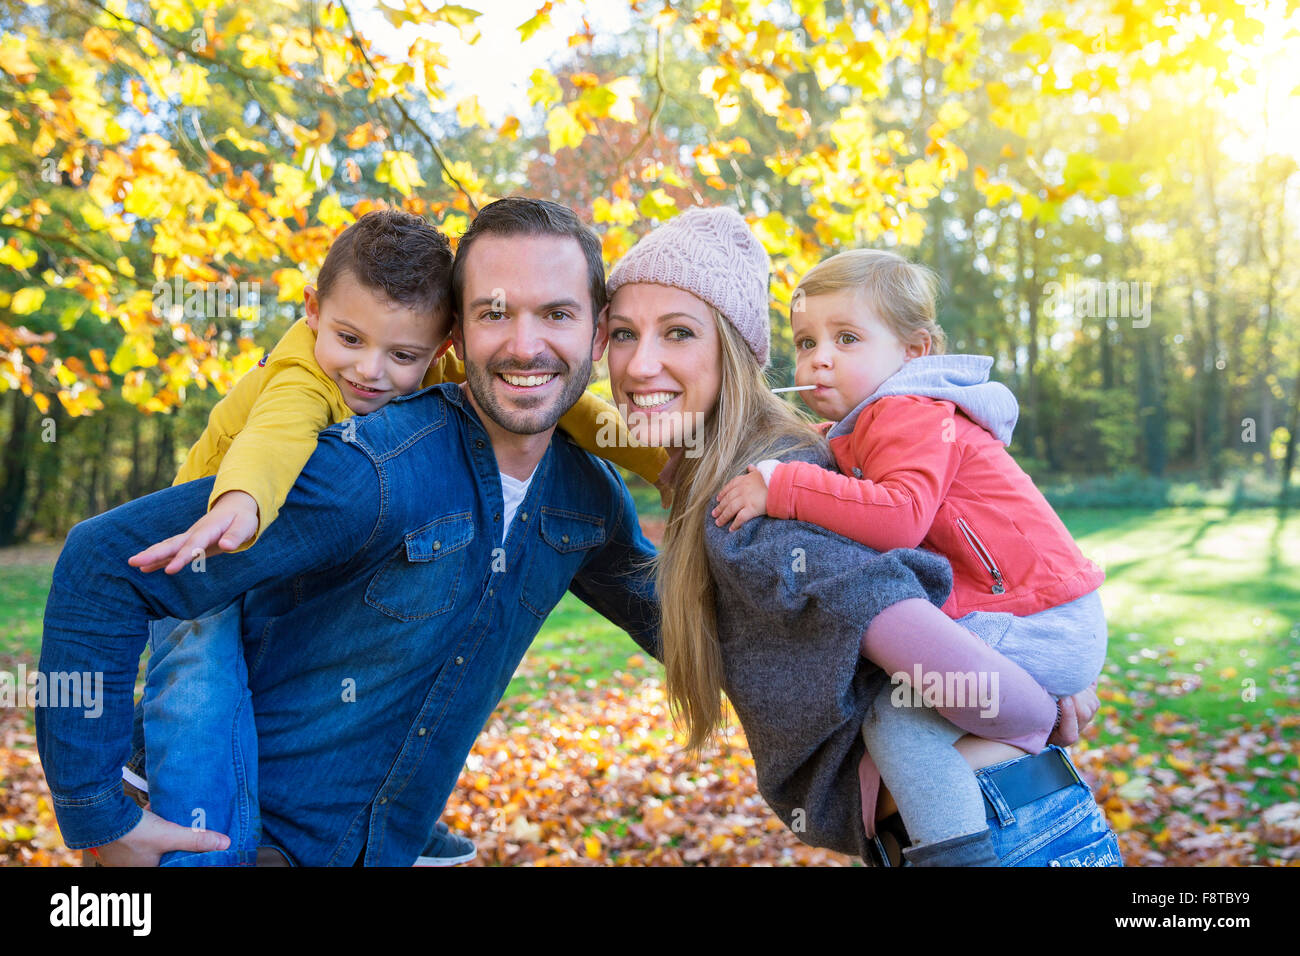 Portrait of a family in park - Stock Image